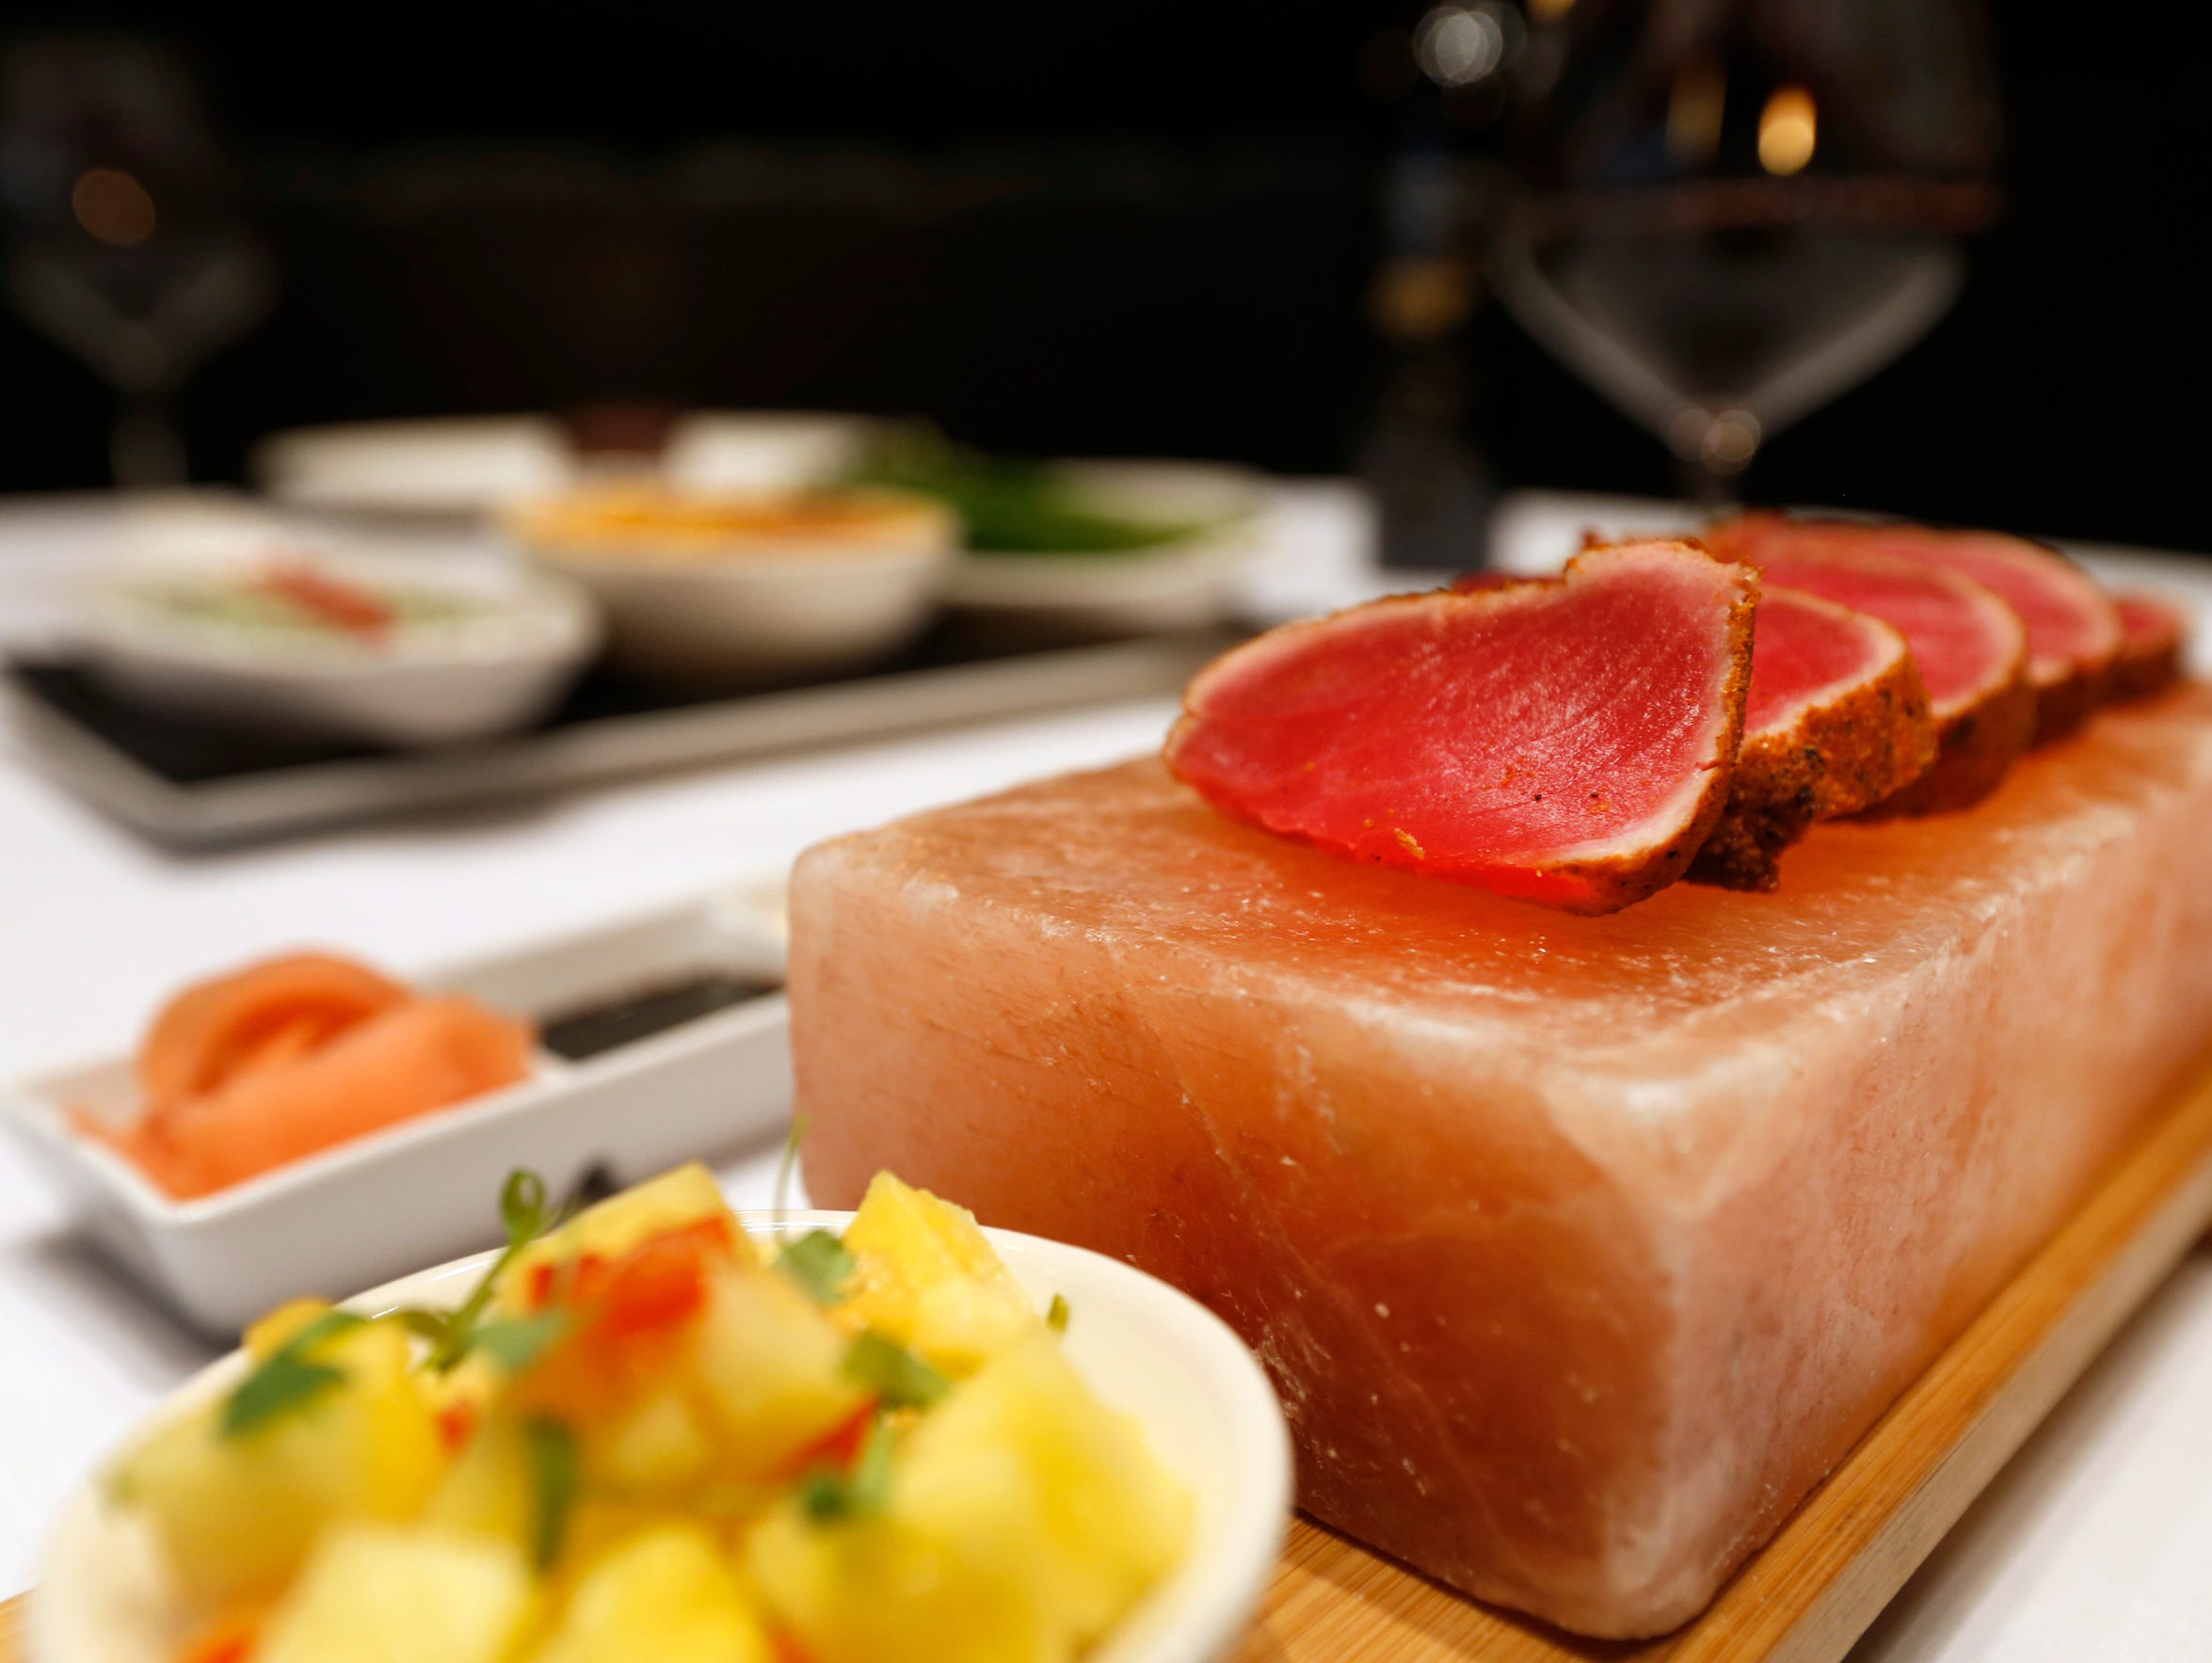 The Pan Seared Hawaiian Ahi Tuna at Level 2 Steakhouse